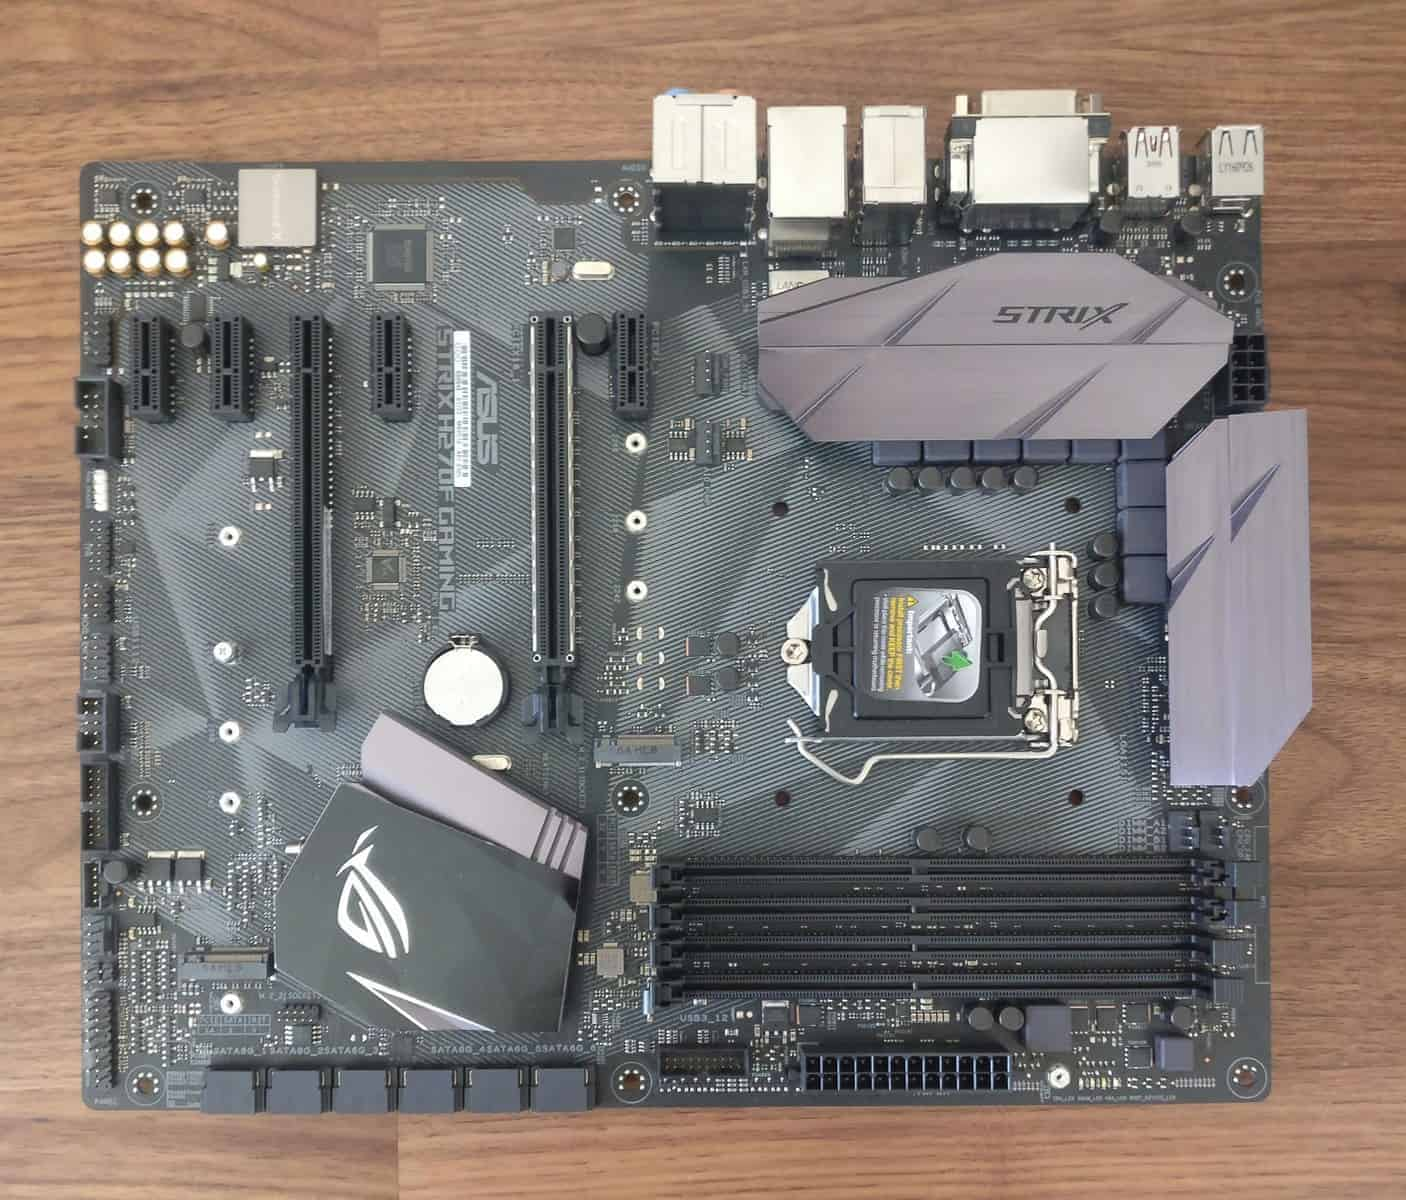 Asus-Strix-Motherboard-Photos-17 Asus Strix H270F ROG Gaming Motherboard Review